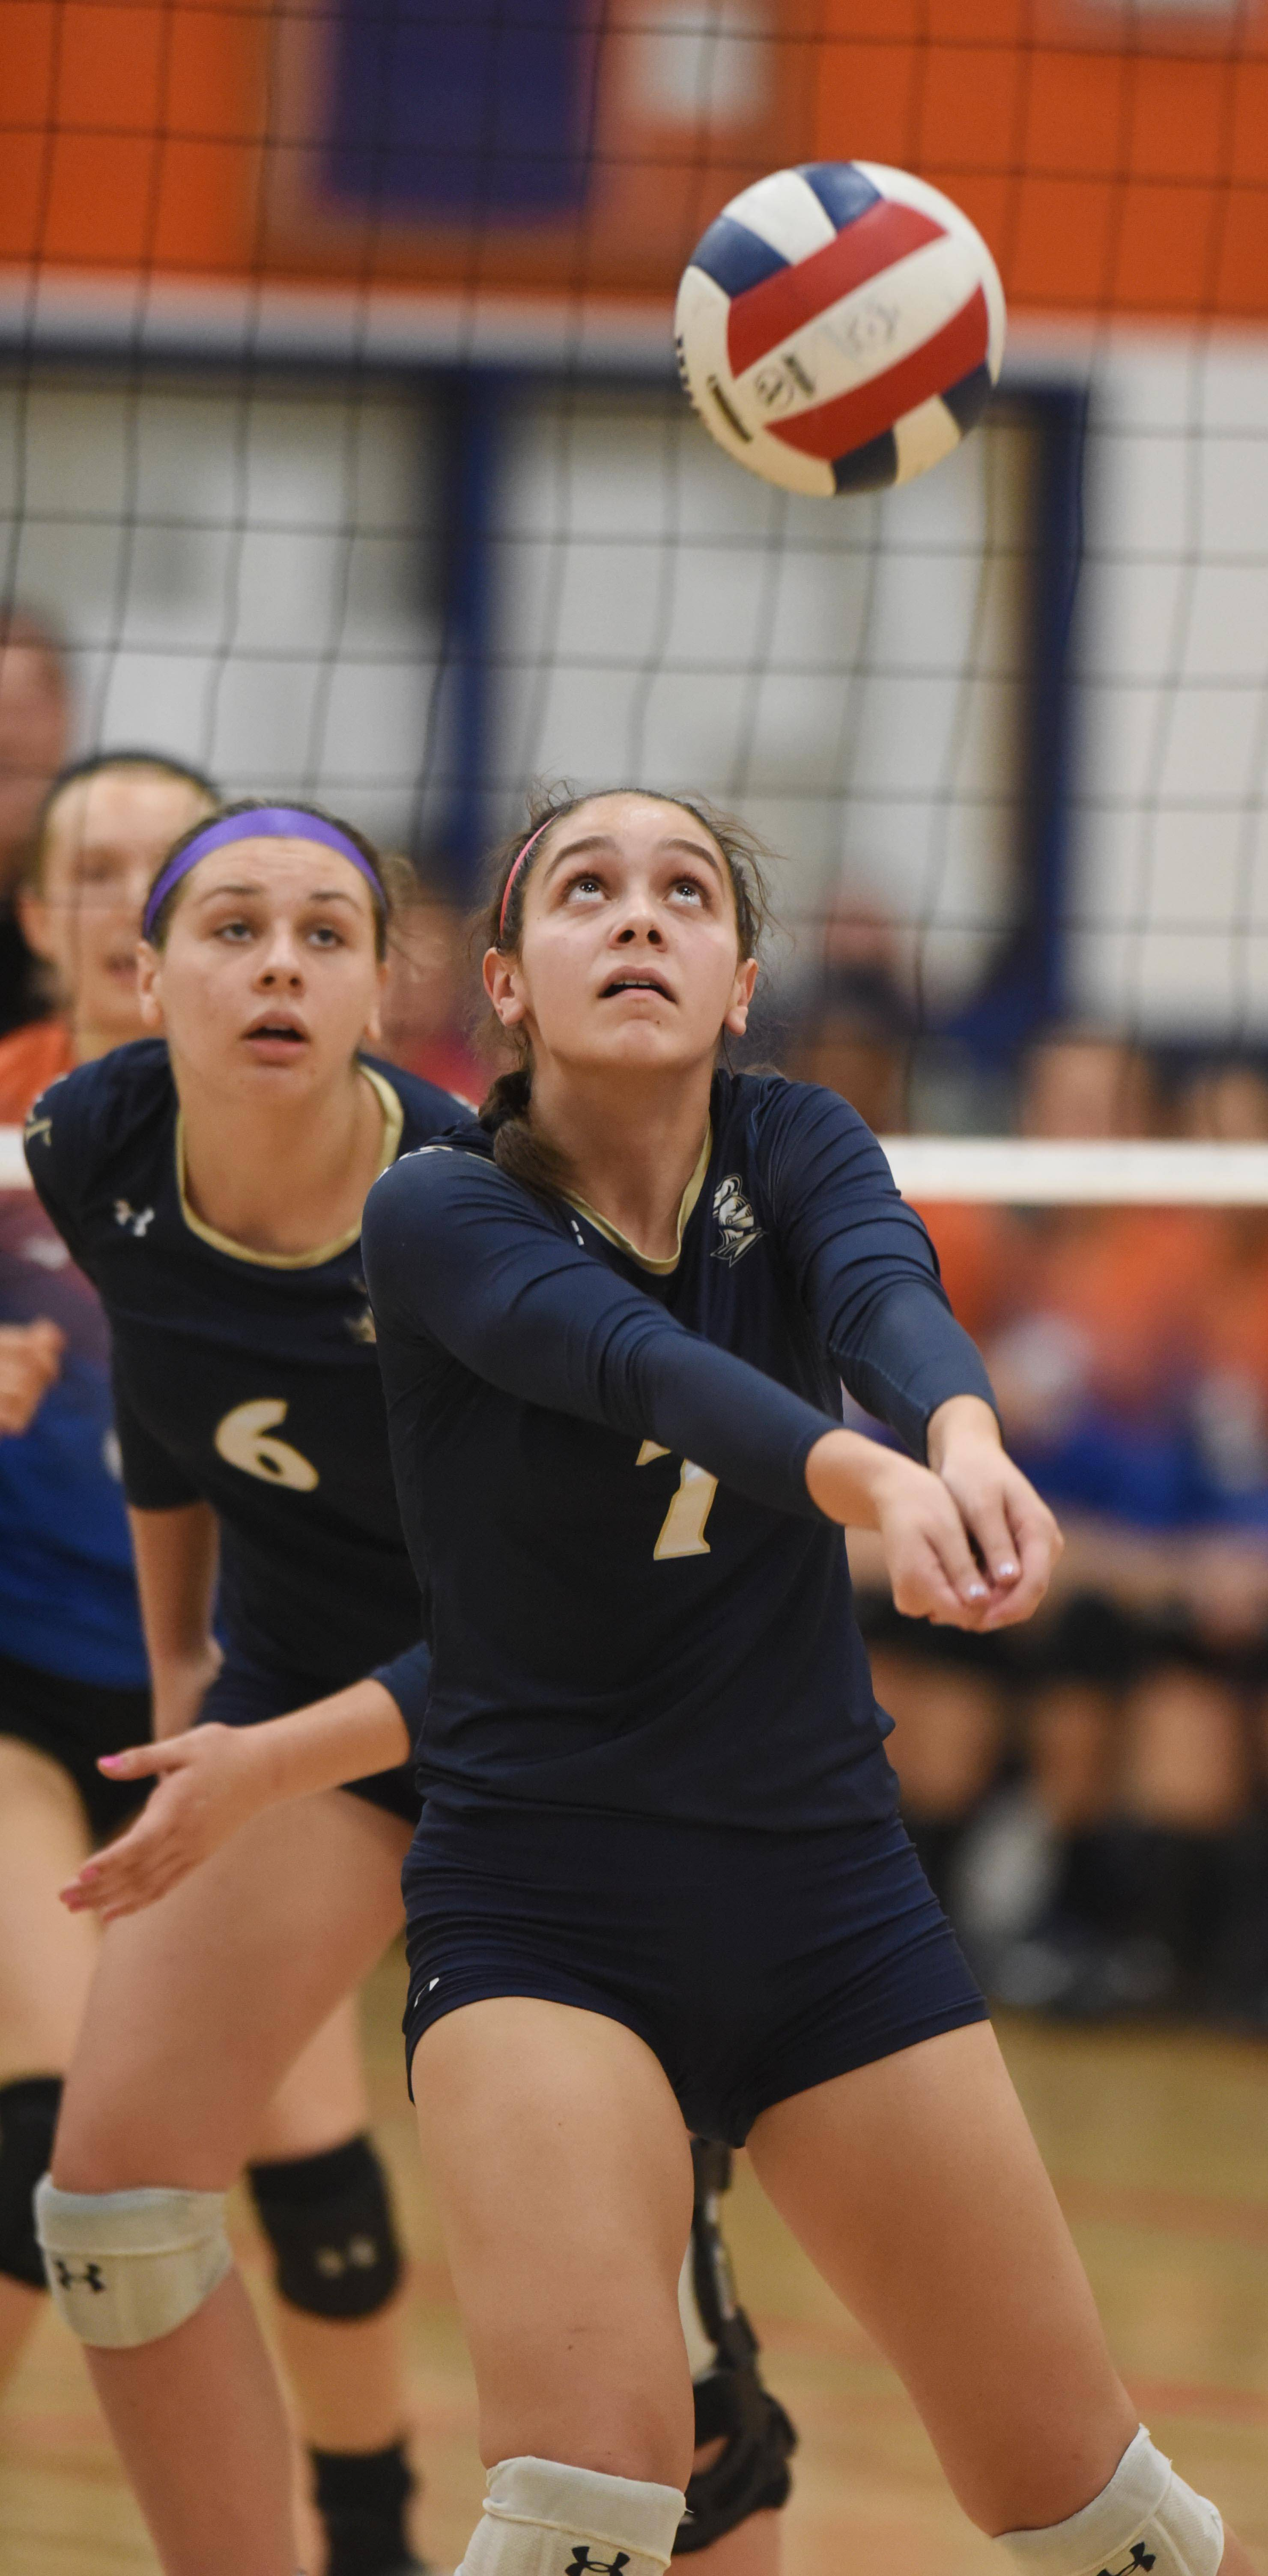 IC Catholic Prep's Sophie Hurt keeps the ball inn play with a dig during Tuesday's girls volleyball match against Fenton.